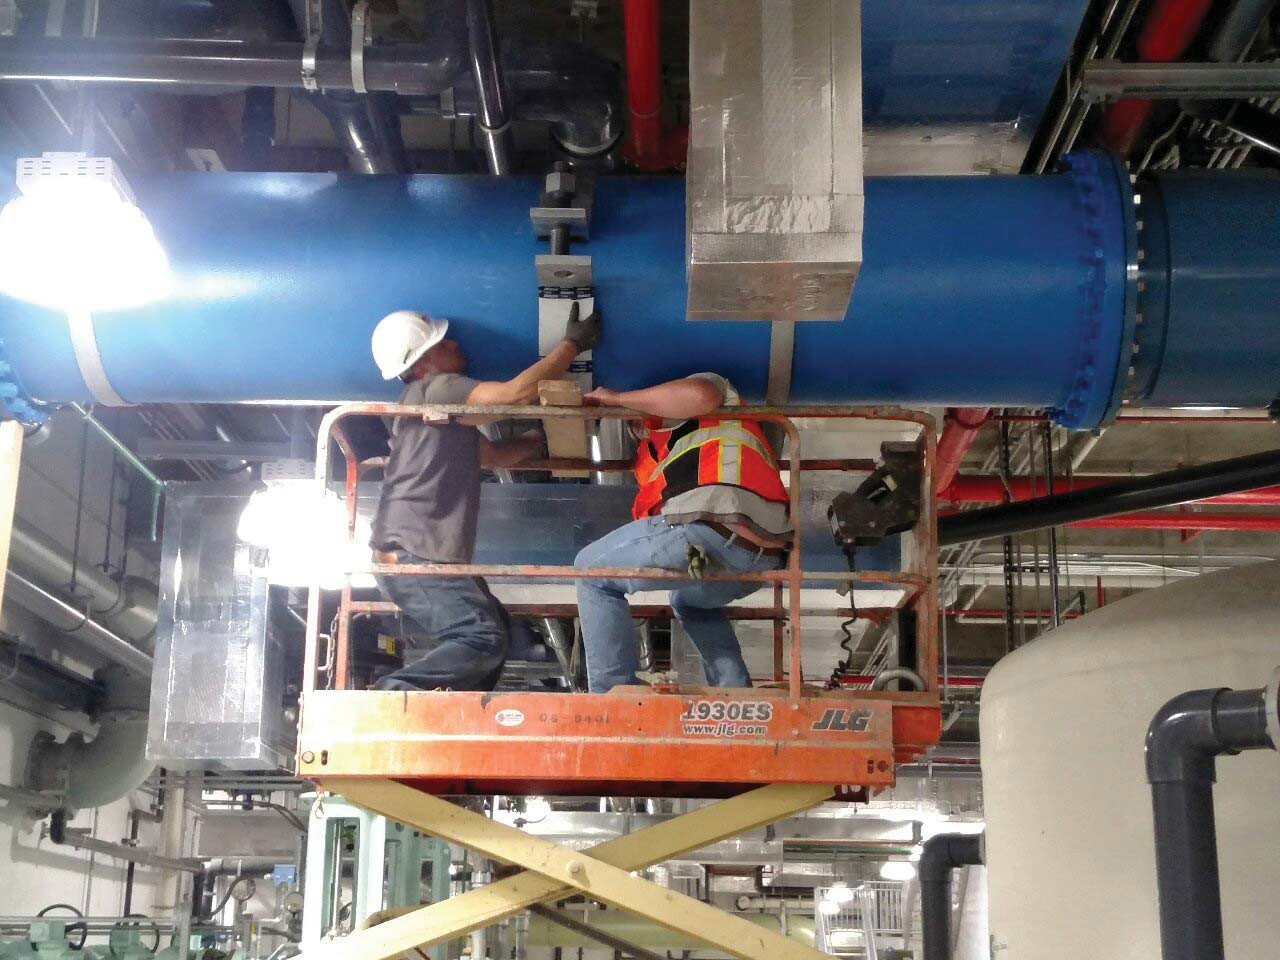 JTJ installing an additional pipe hanger for the 30